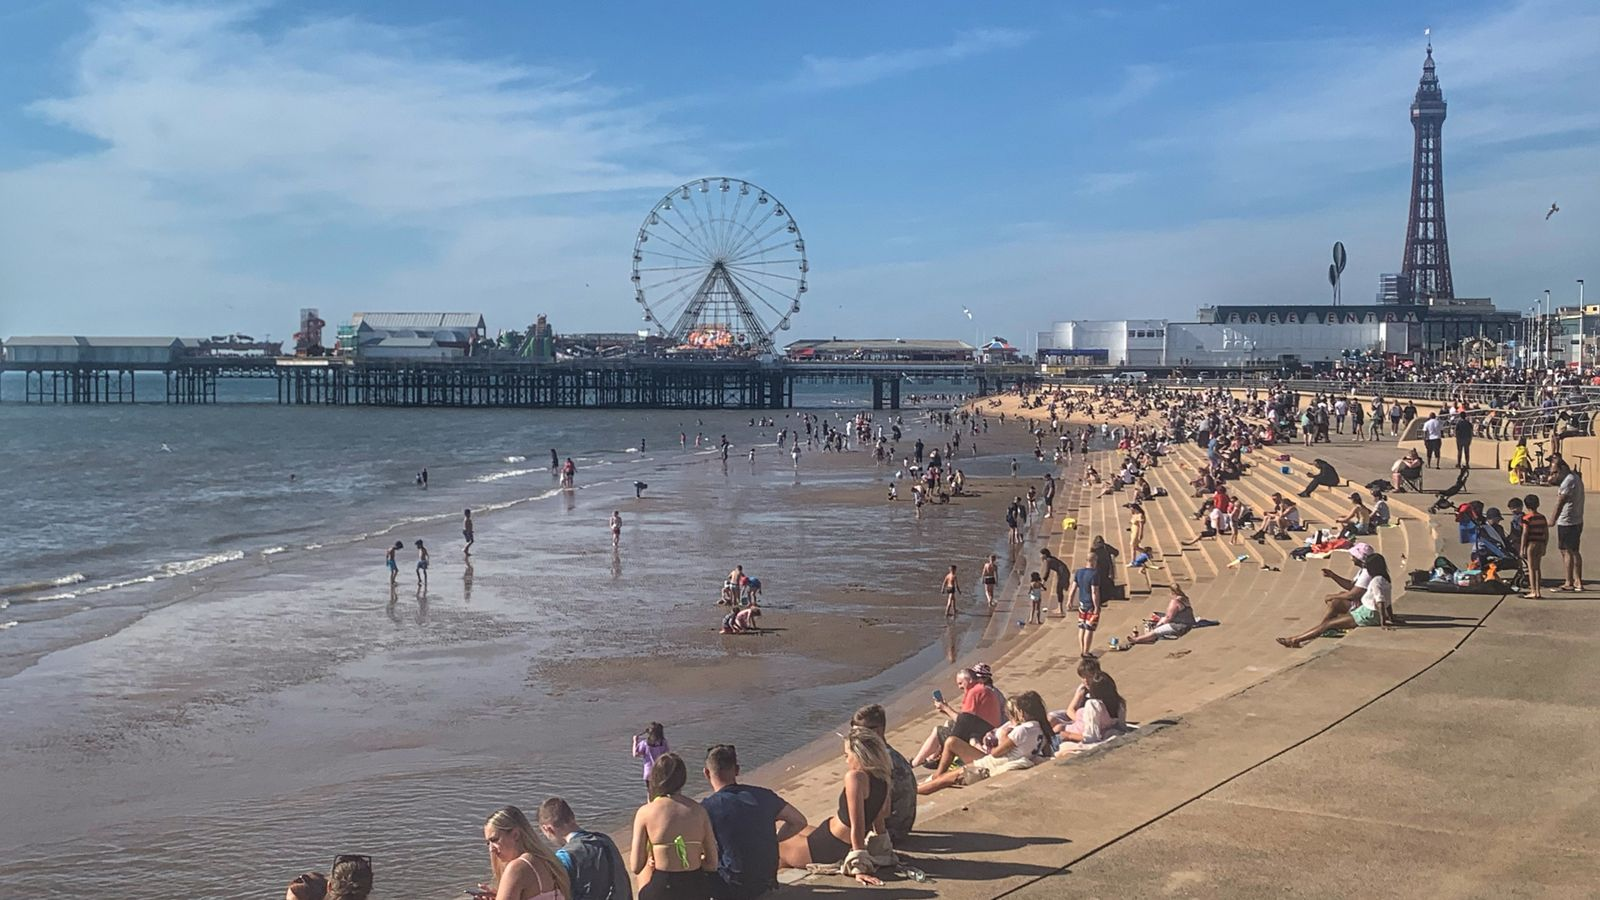 Mini-heatwave could bring hottest day of the year in England so far with highs of 32C